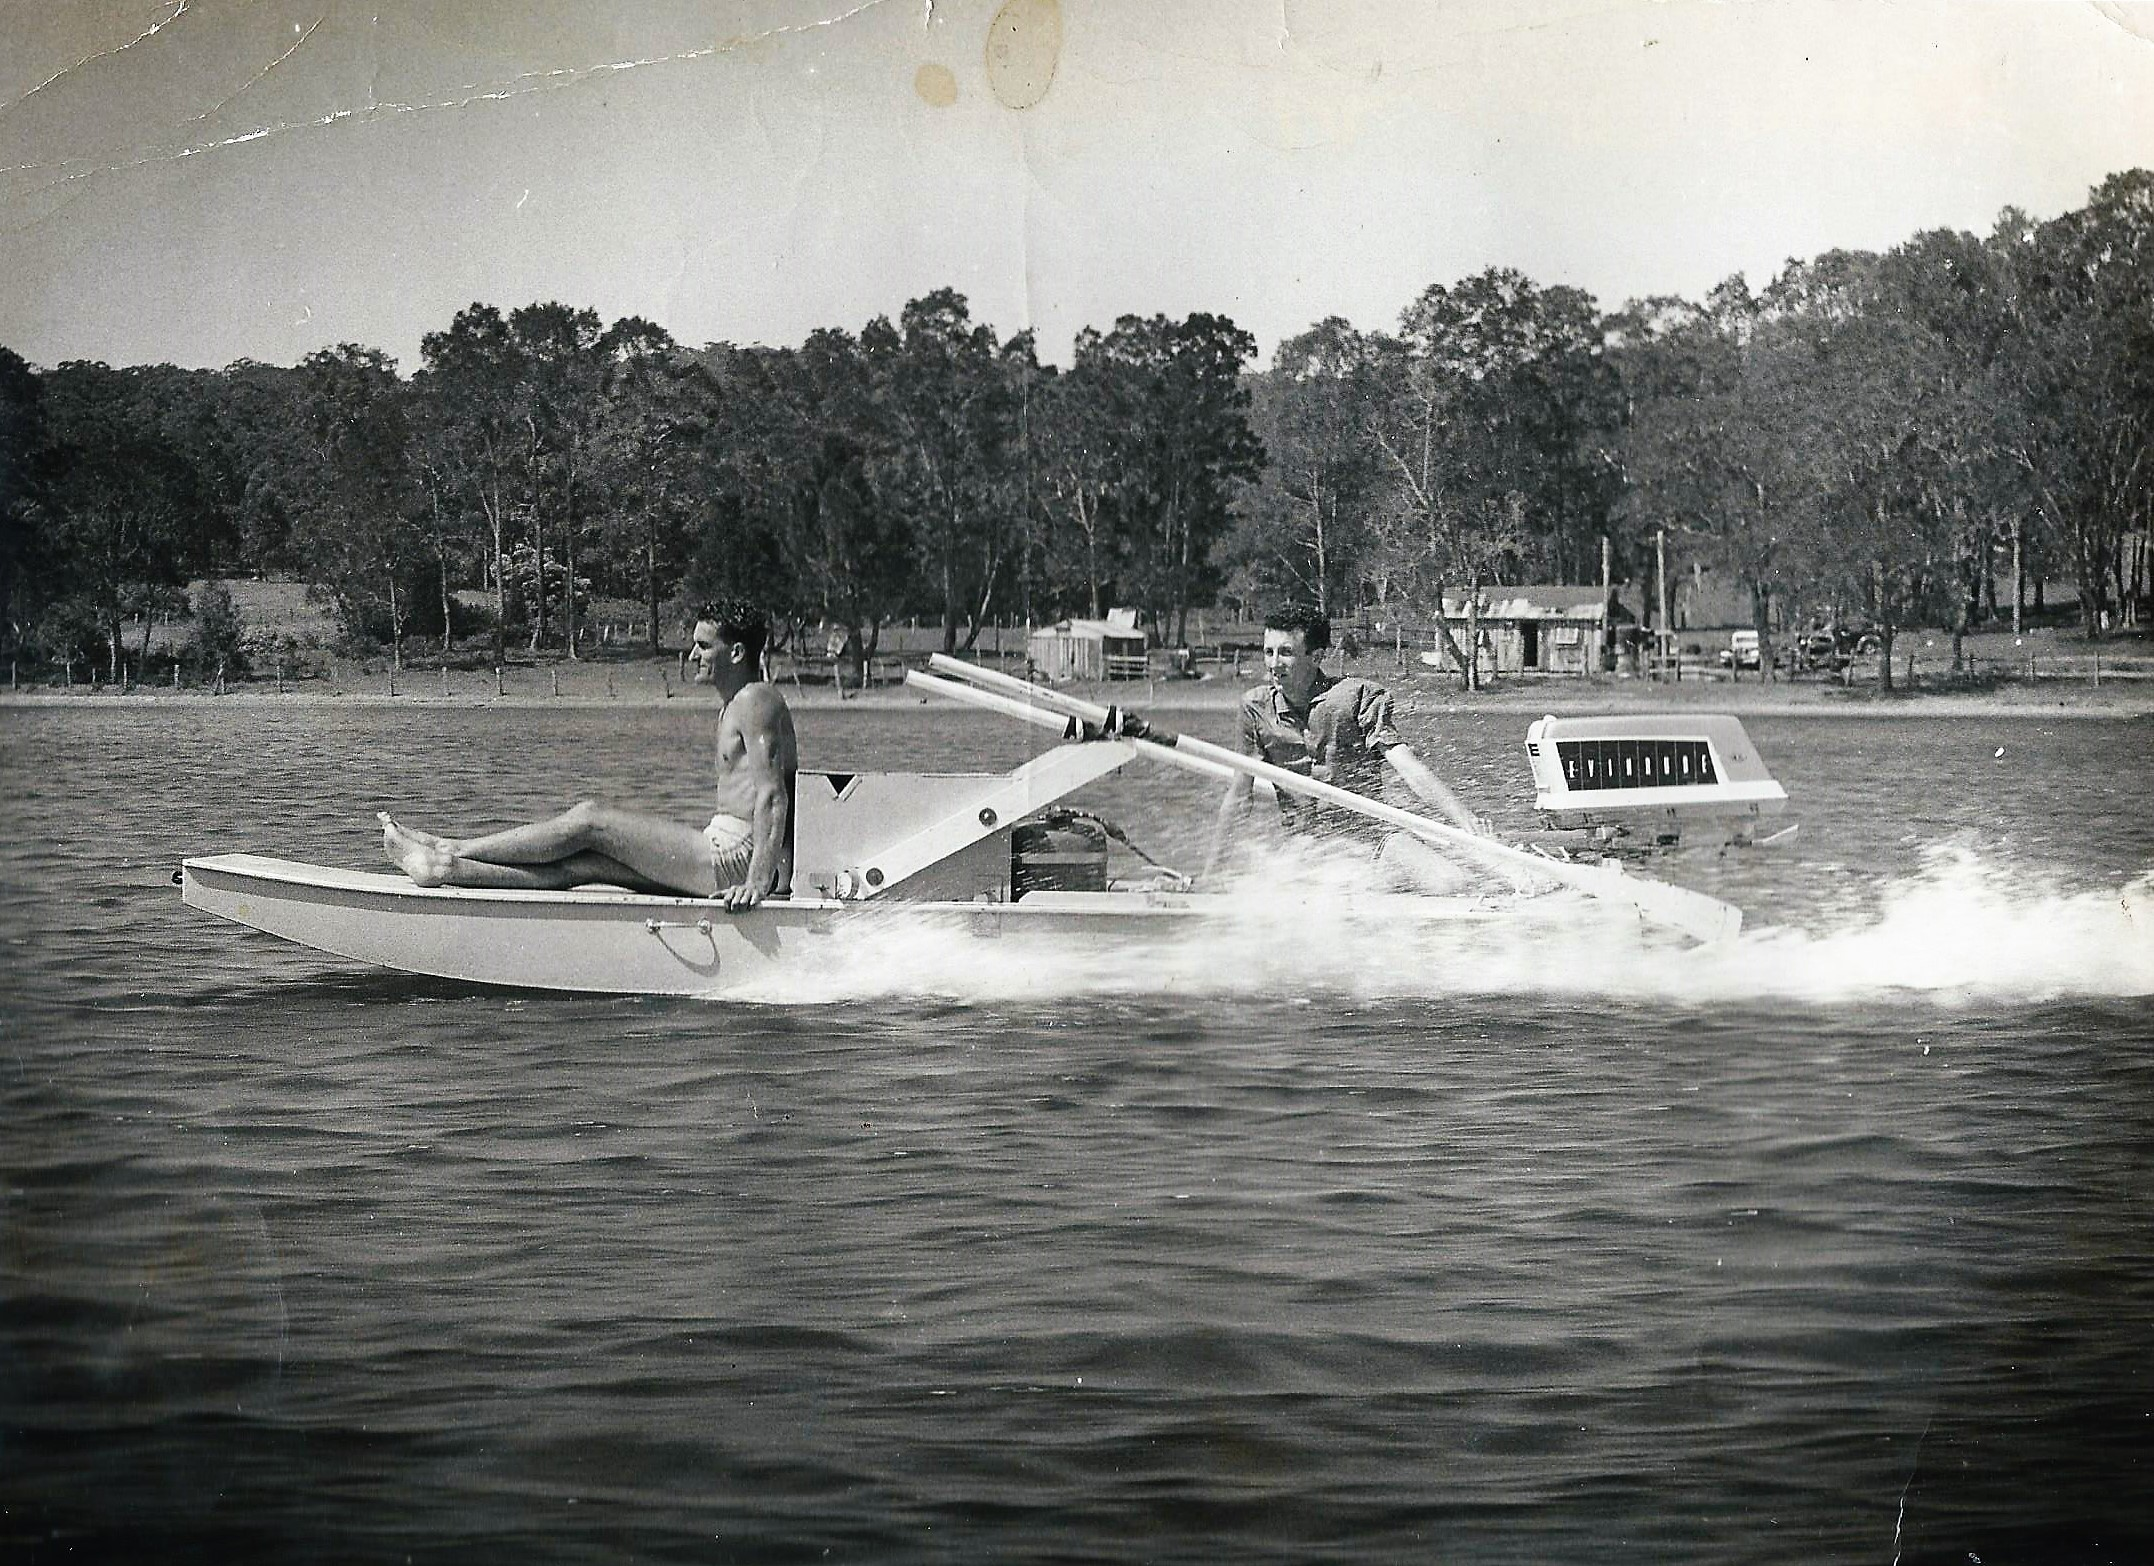 Rowfloat with Outboard